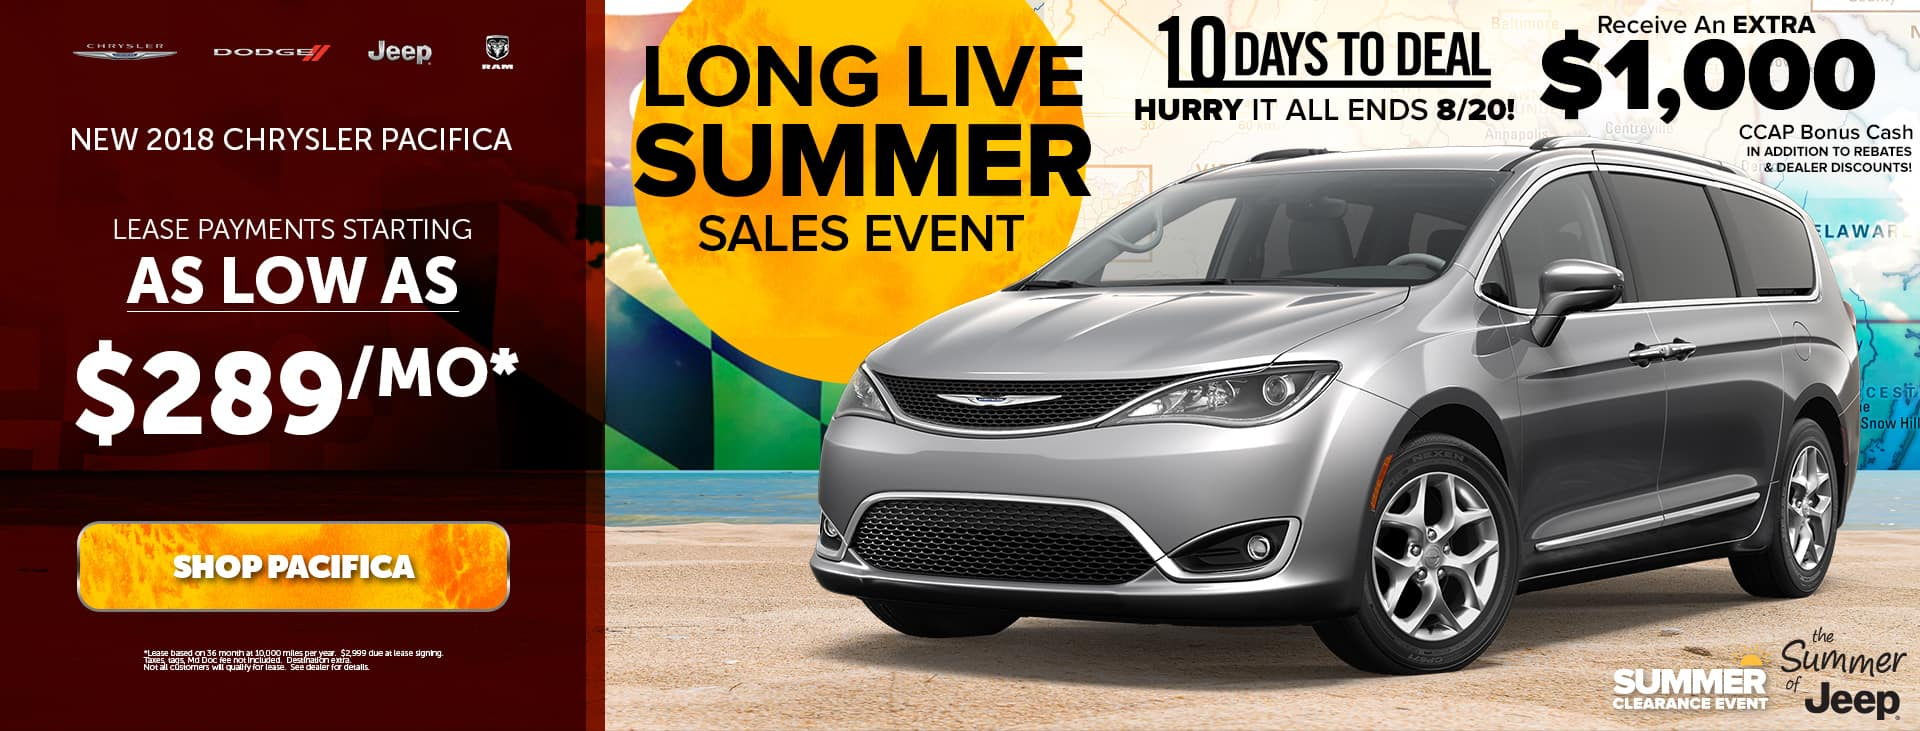 Additional savings during 10 Days to Deal!